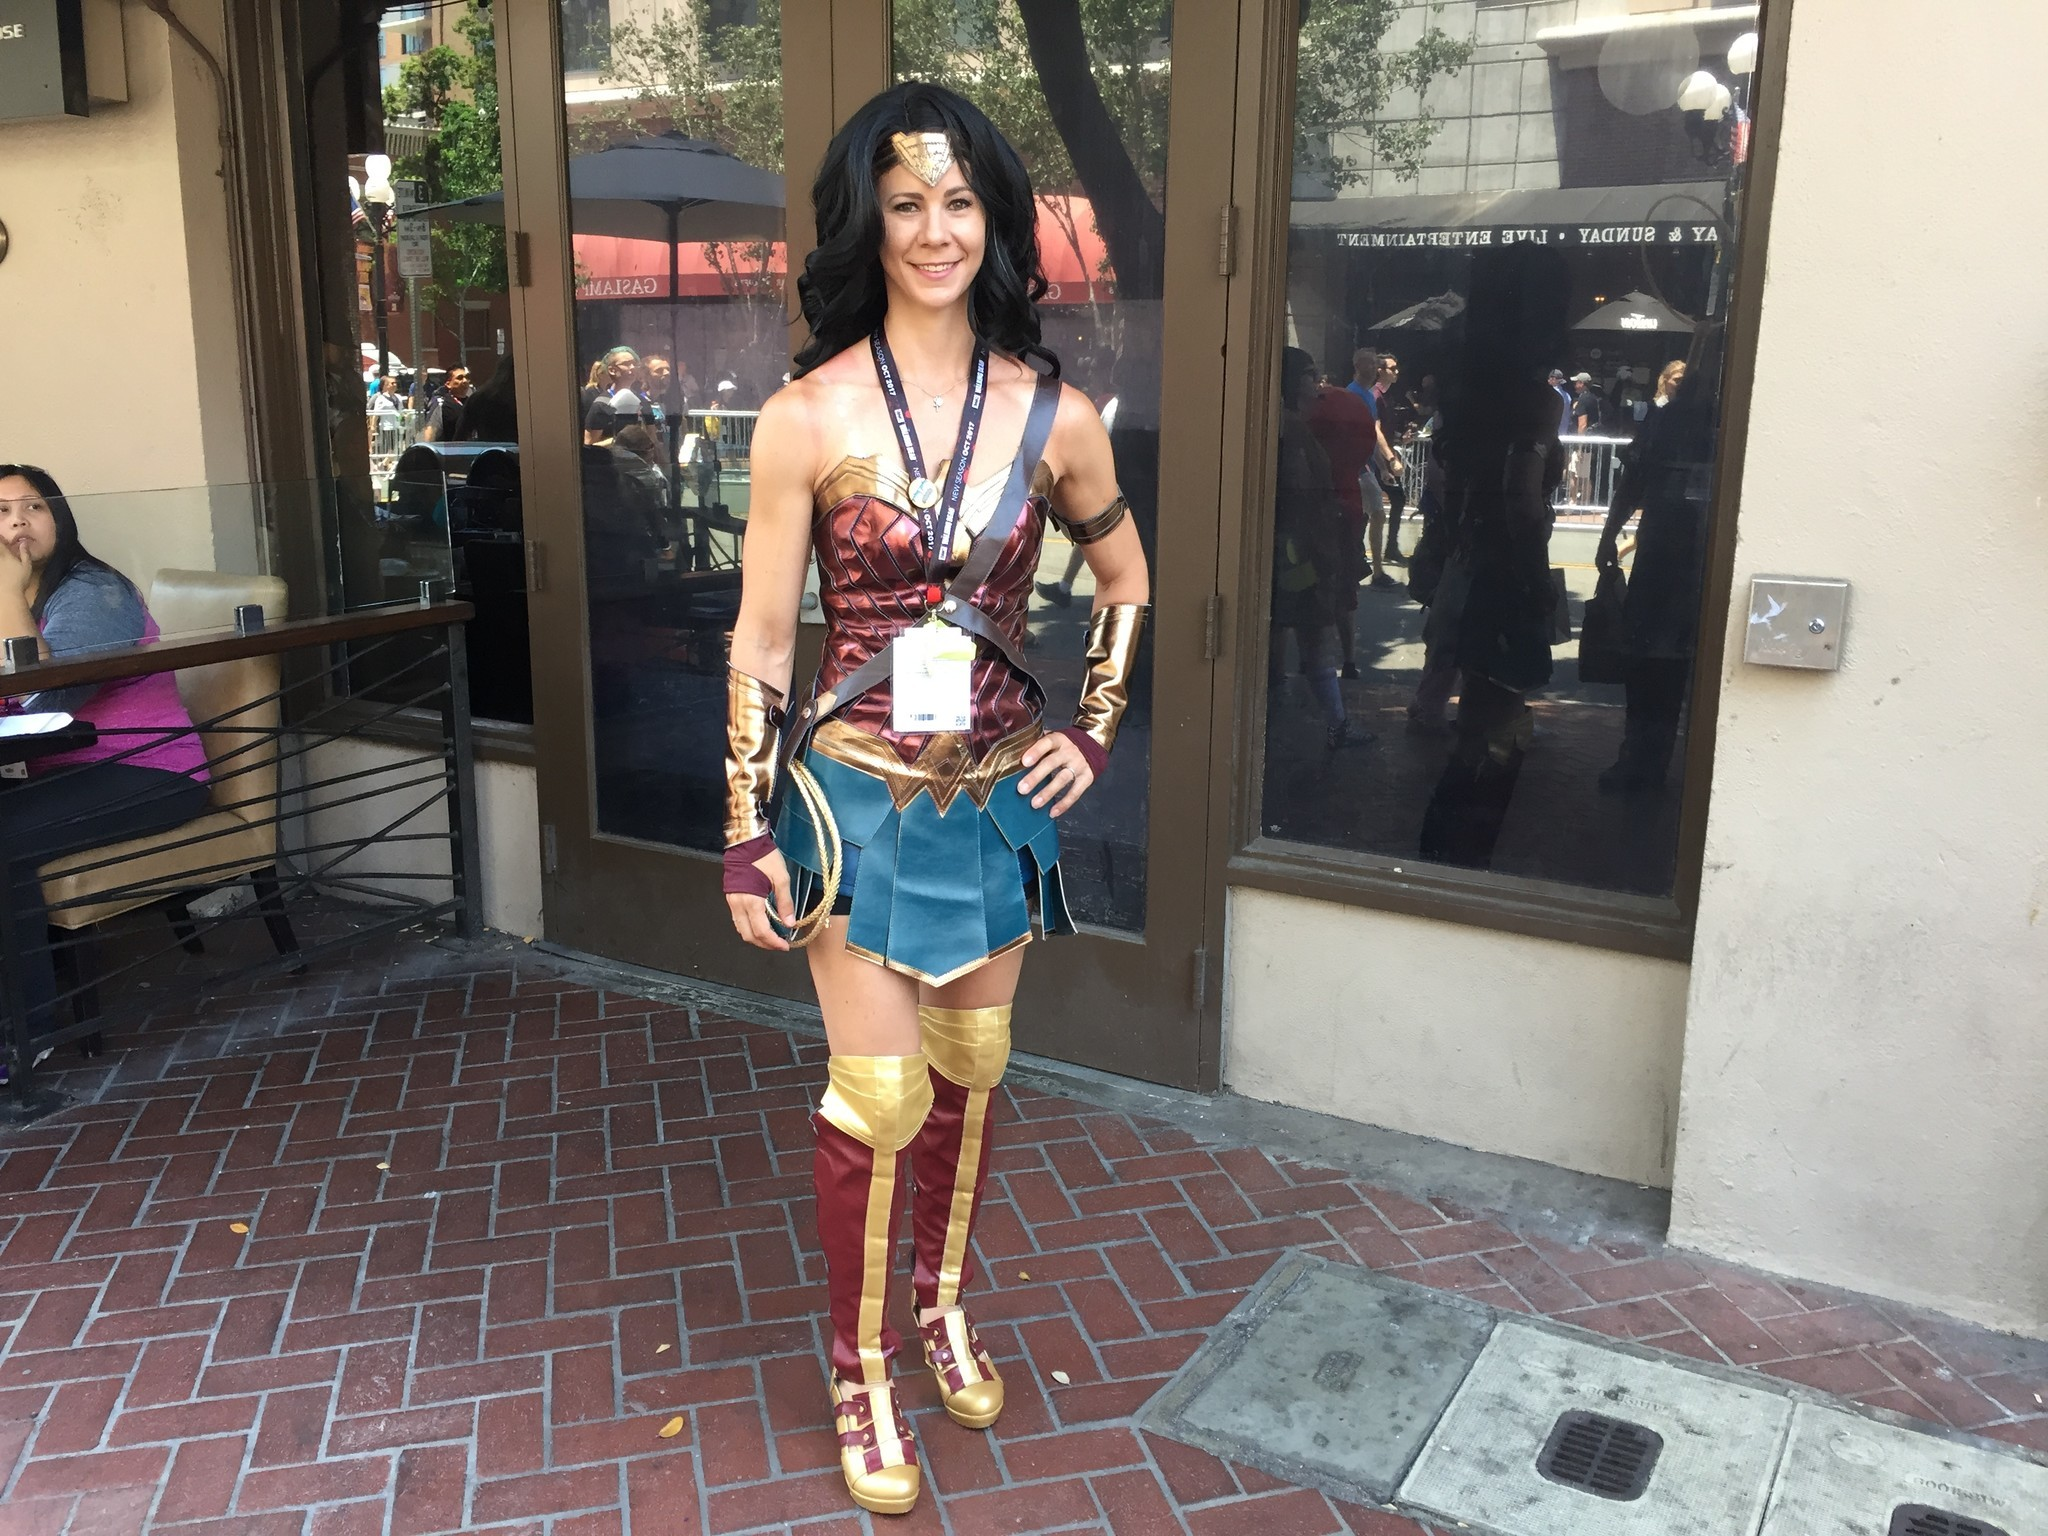 SDCC: Wonder Woman 2 Confirmed At Warner Bros. Panel